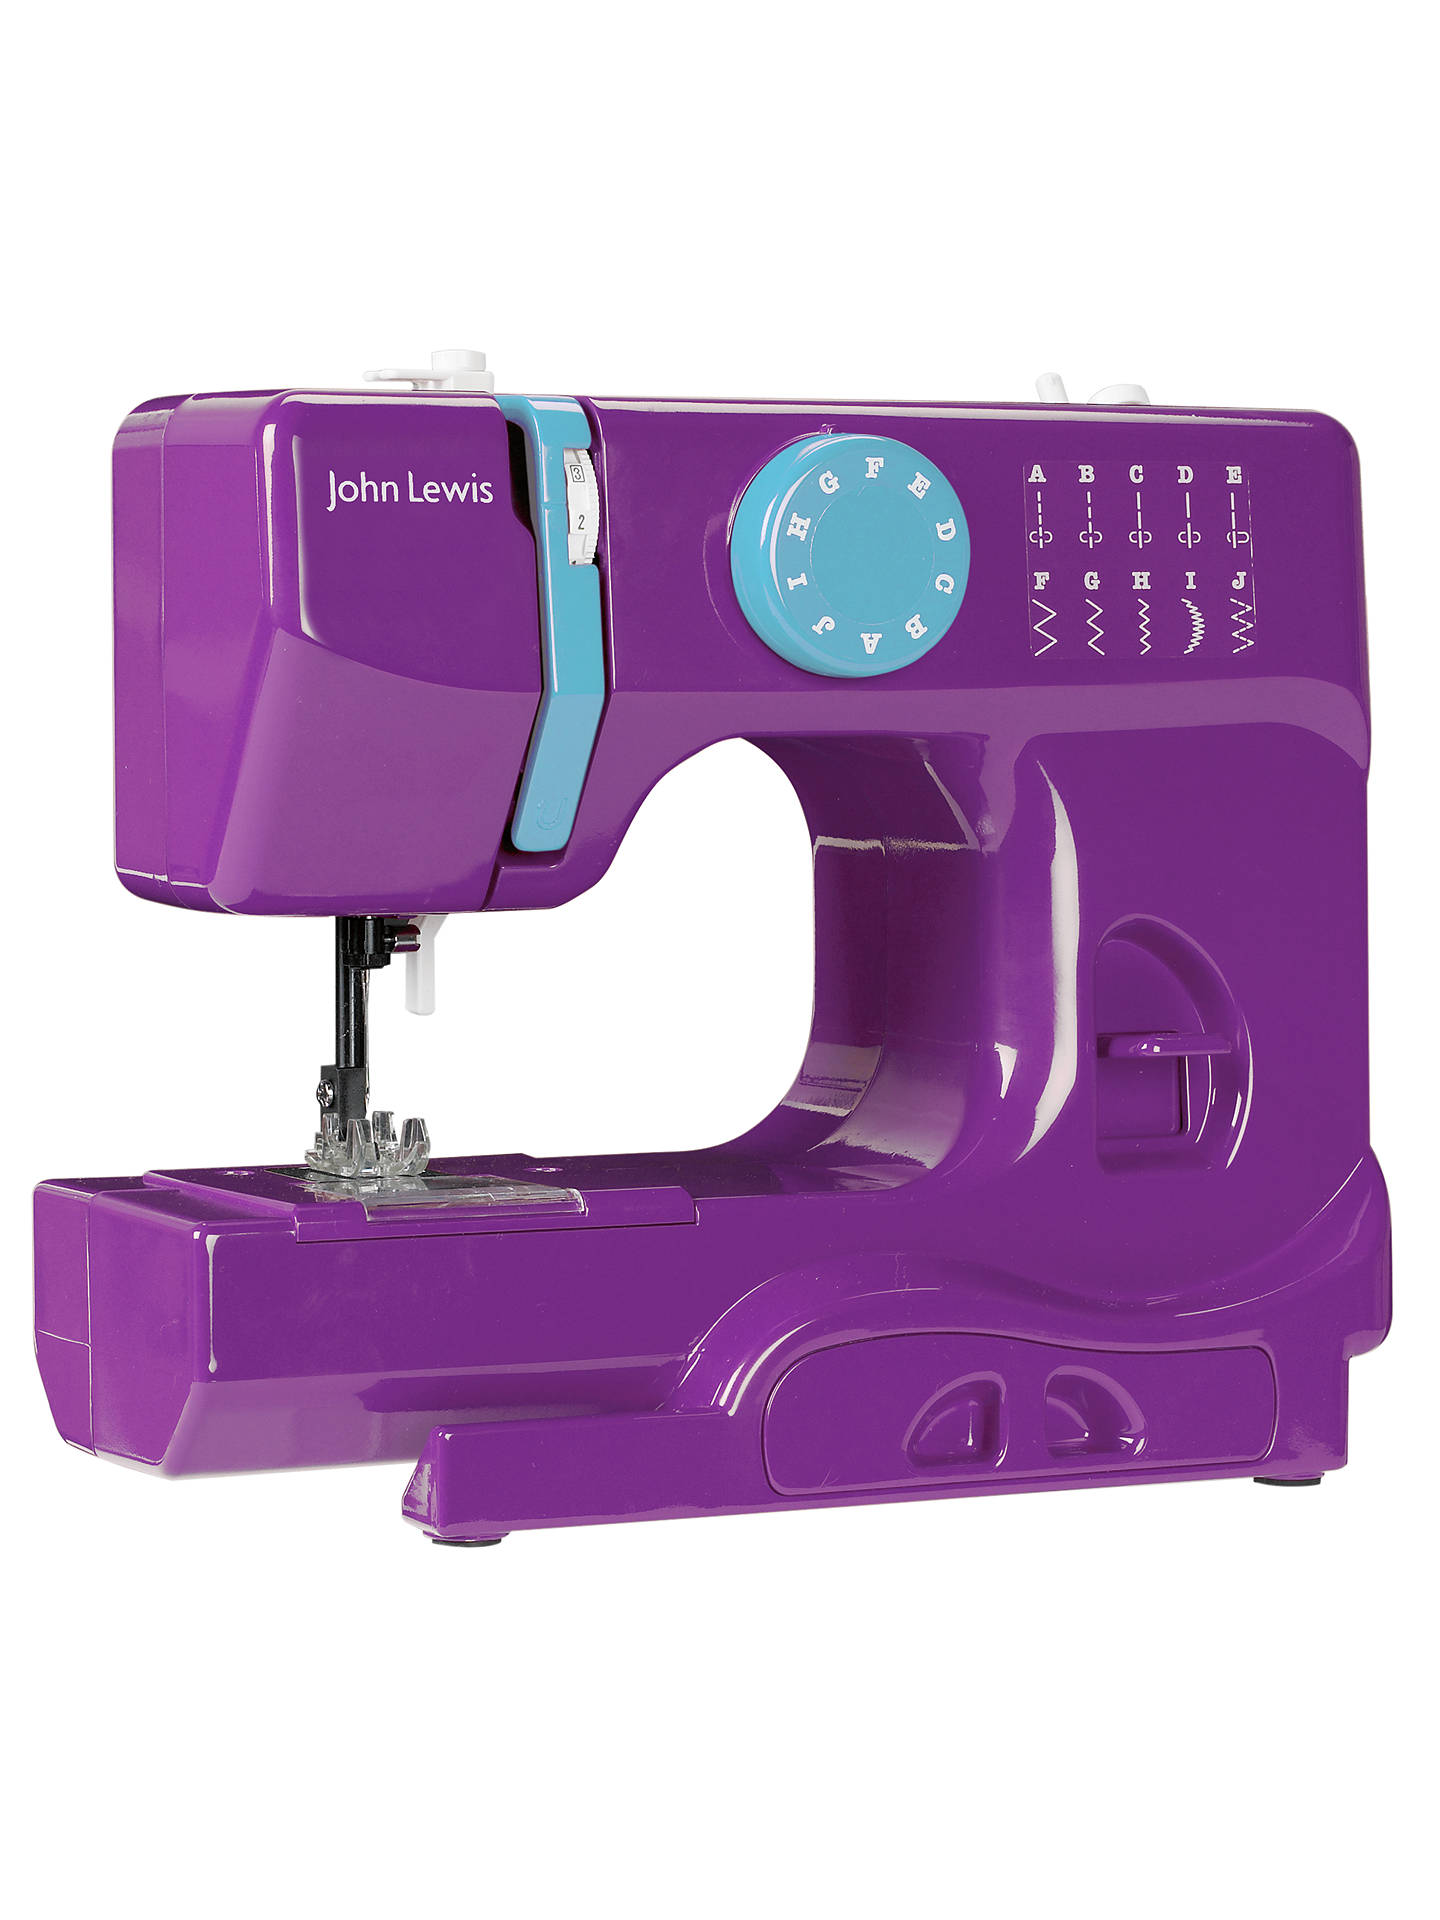 Buy John Lewis Mini Colour Block Sewing Machine, Purple Online at johnlewis.com